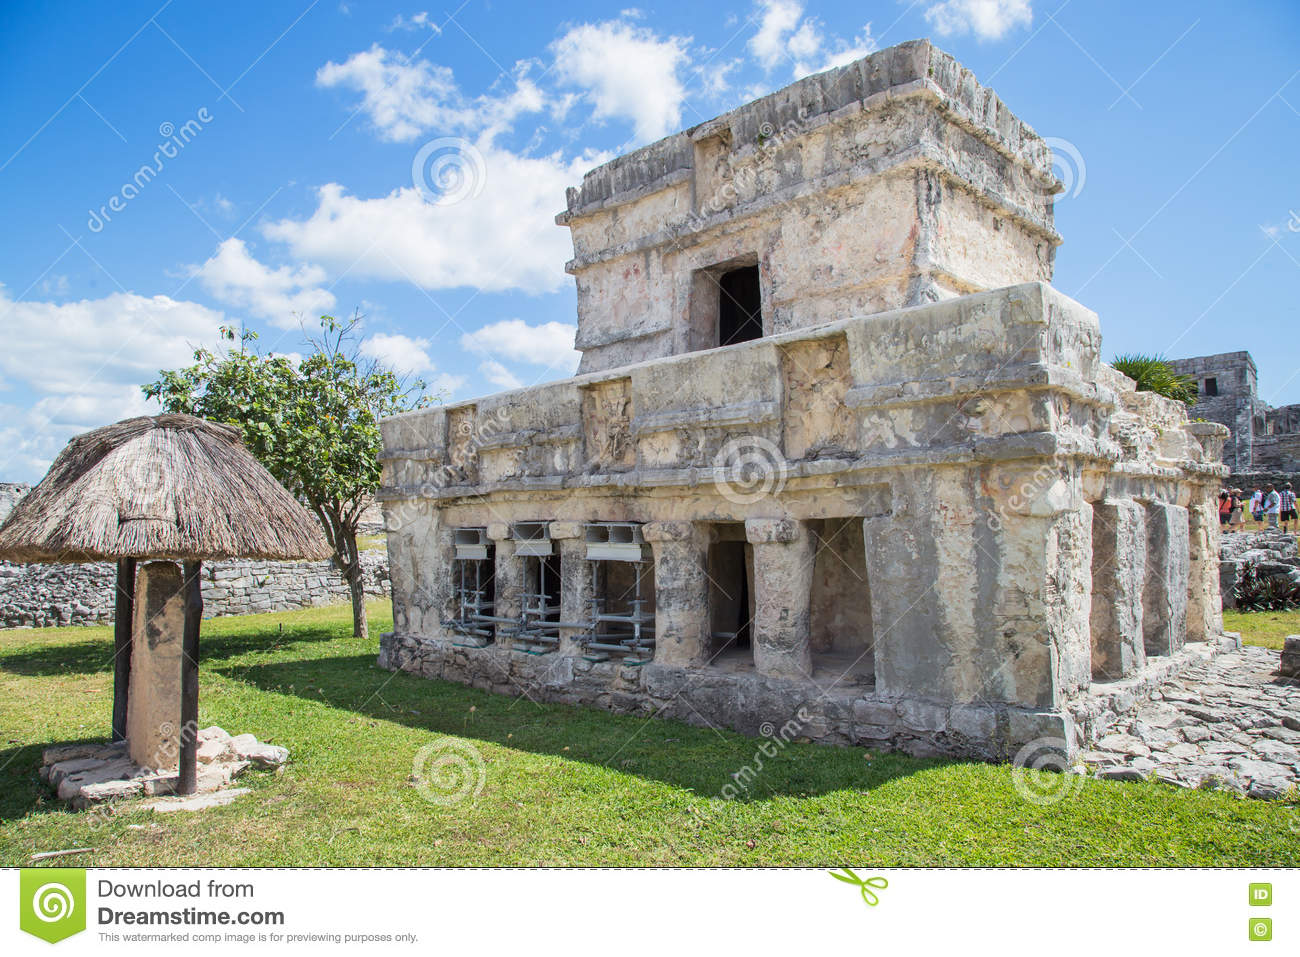 Mayan Ruins of Tulum. Old city. Tulum Archaeological Site. Riviera Maya. Mexico